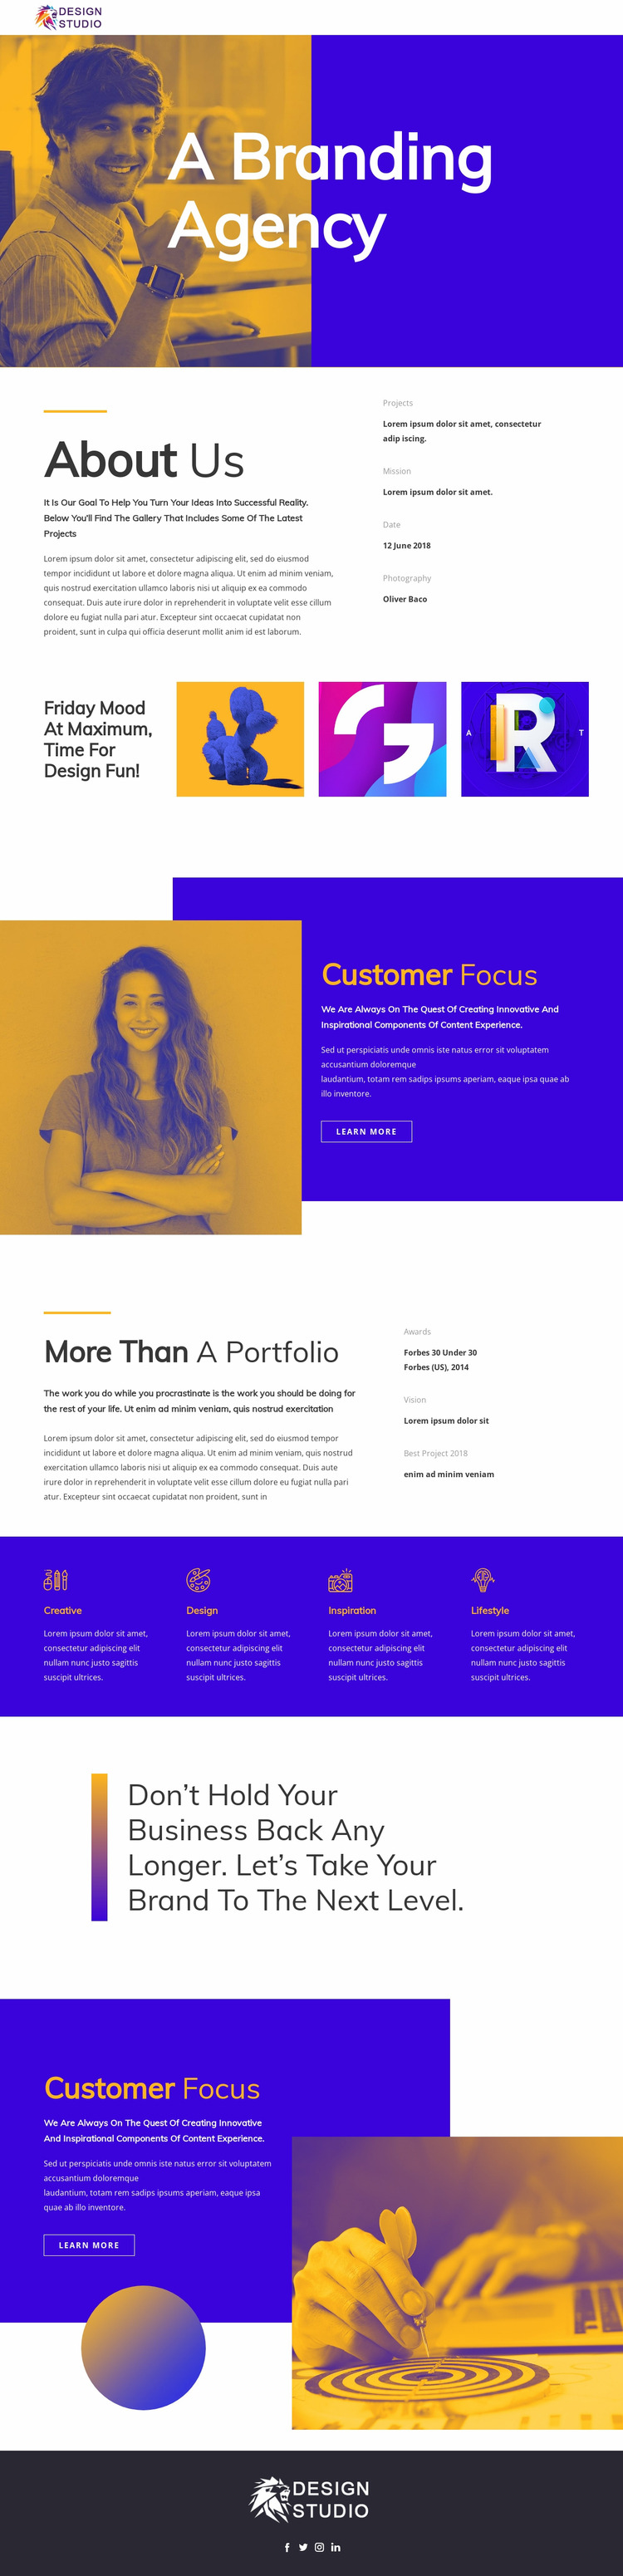 Branding Agency WordPress Website Builder